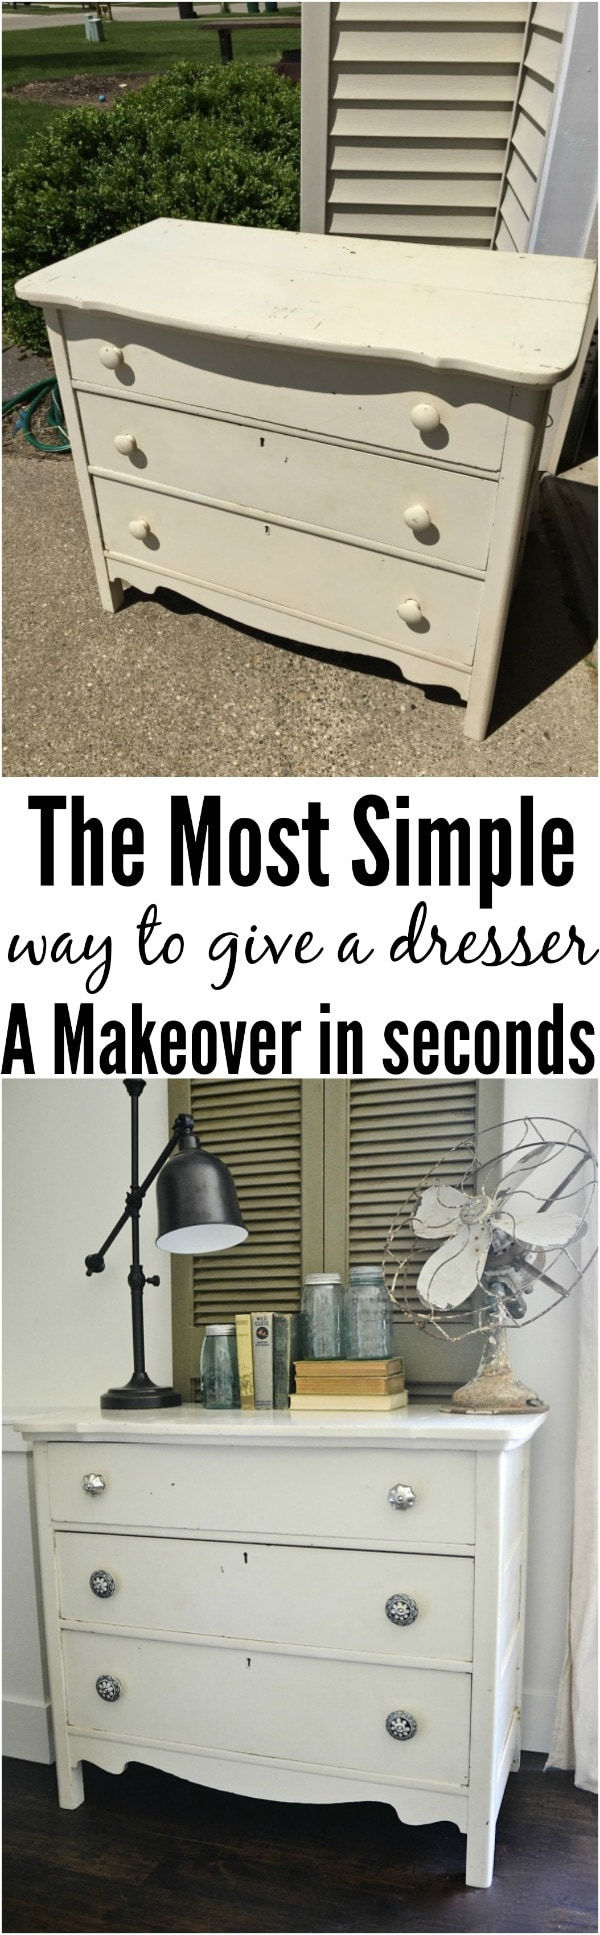 The most simple & inexpensive way to makeover a dresser or any piece of furniture in seconds!